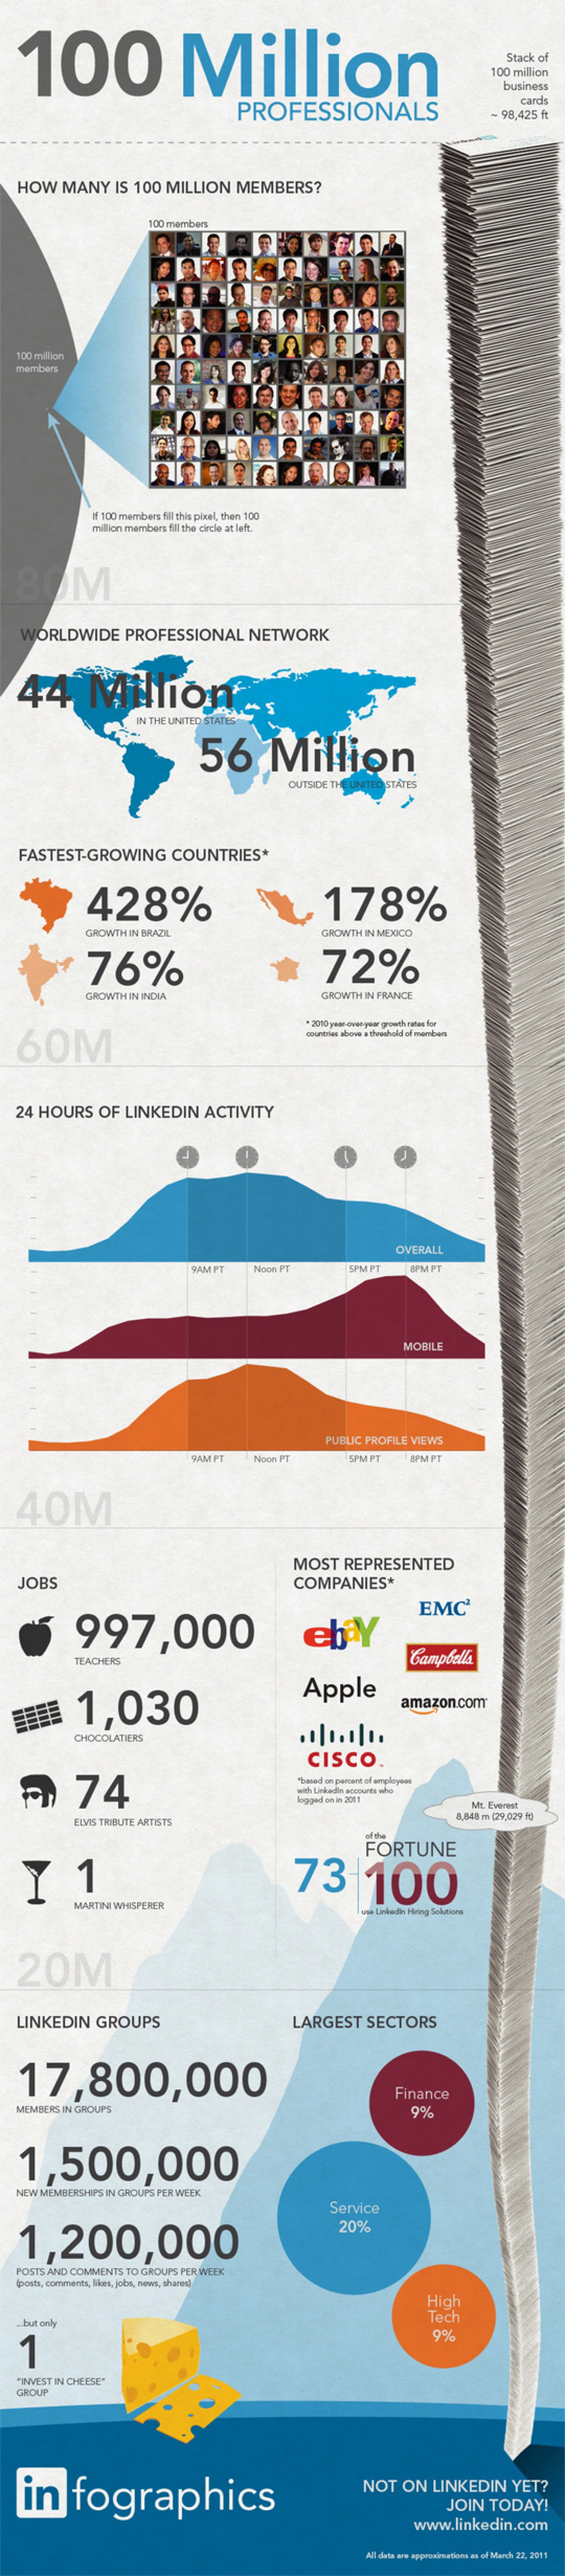 10. LinkedIn - The Largest Professional Network